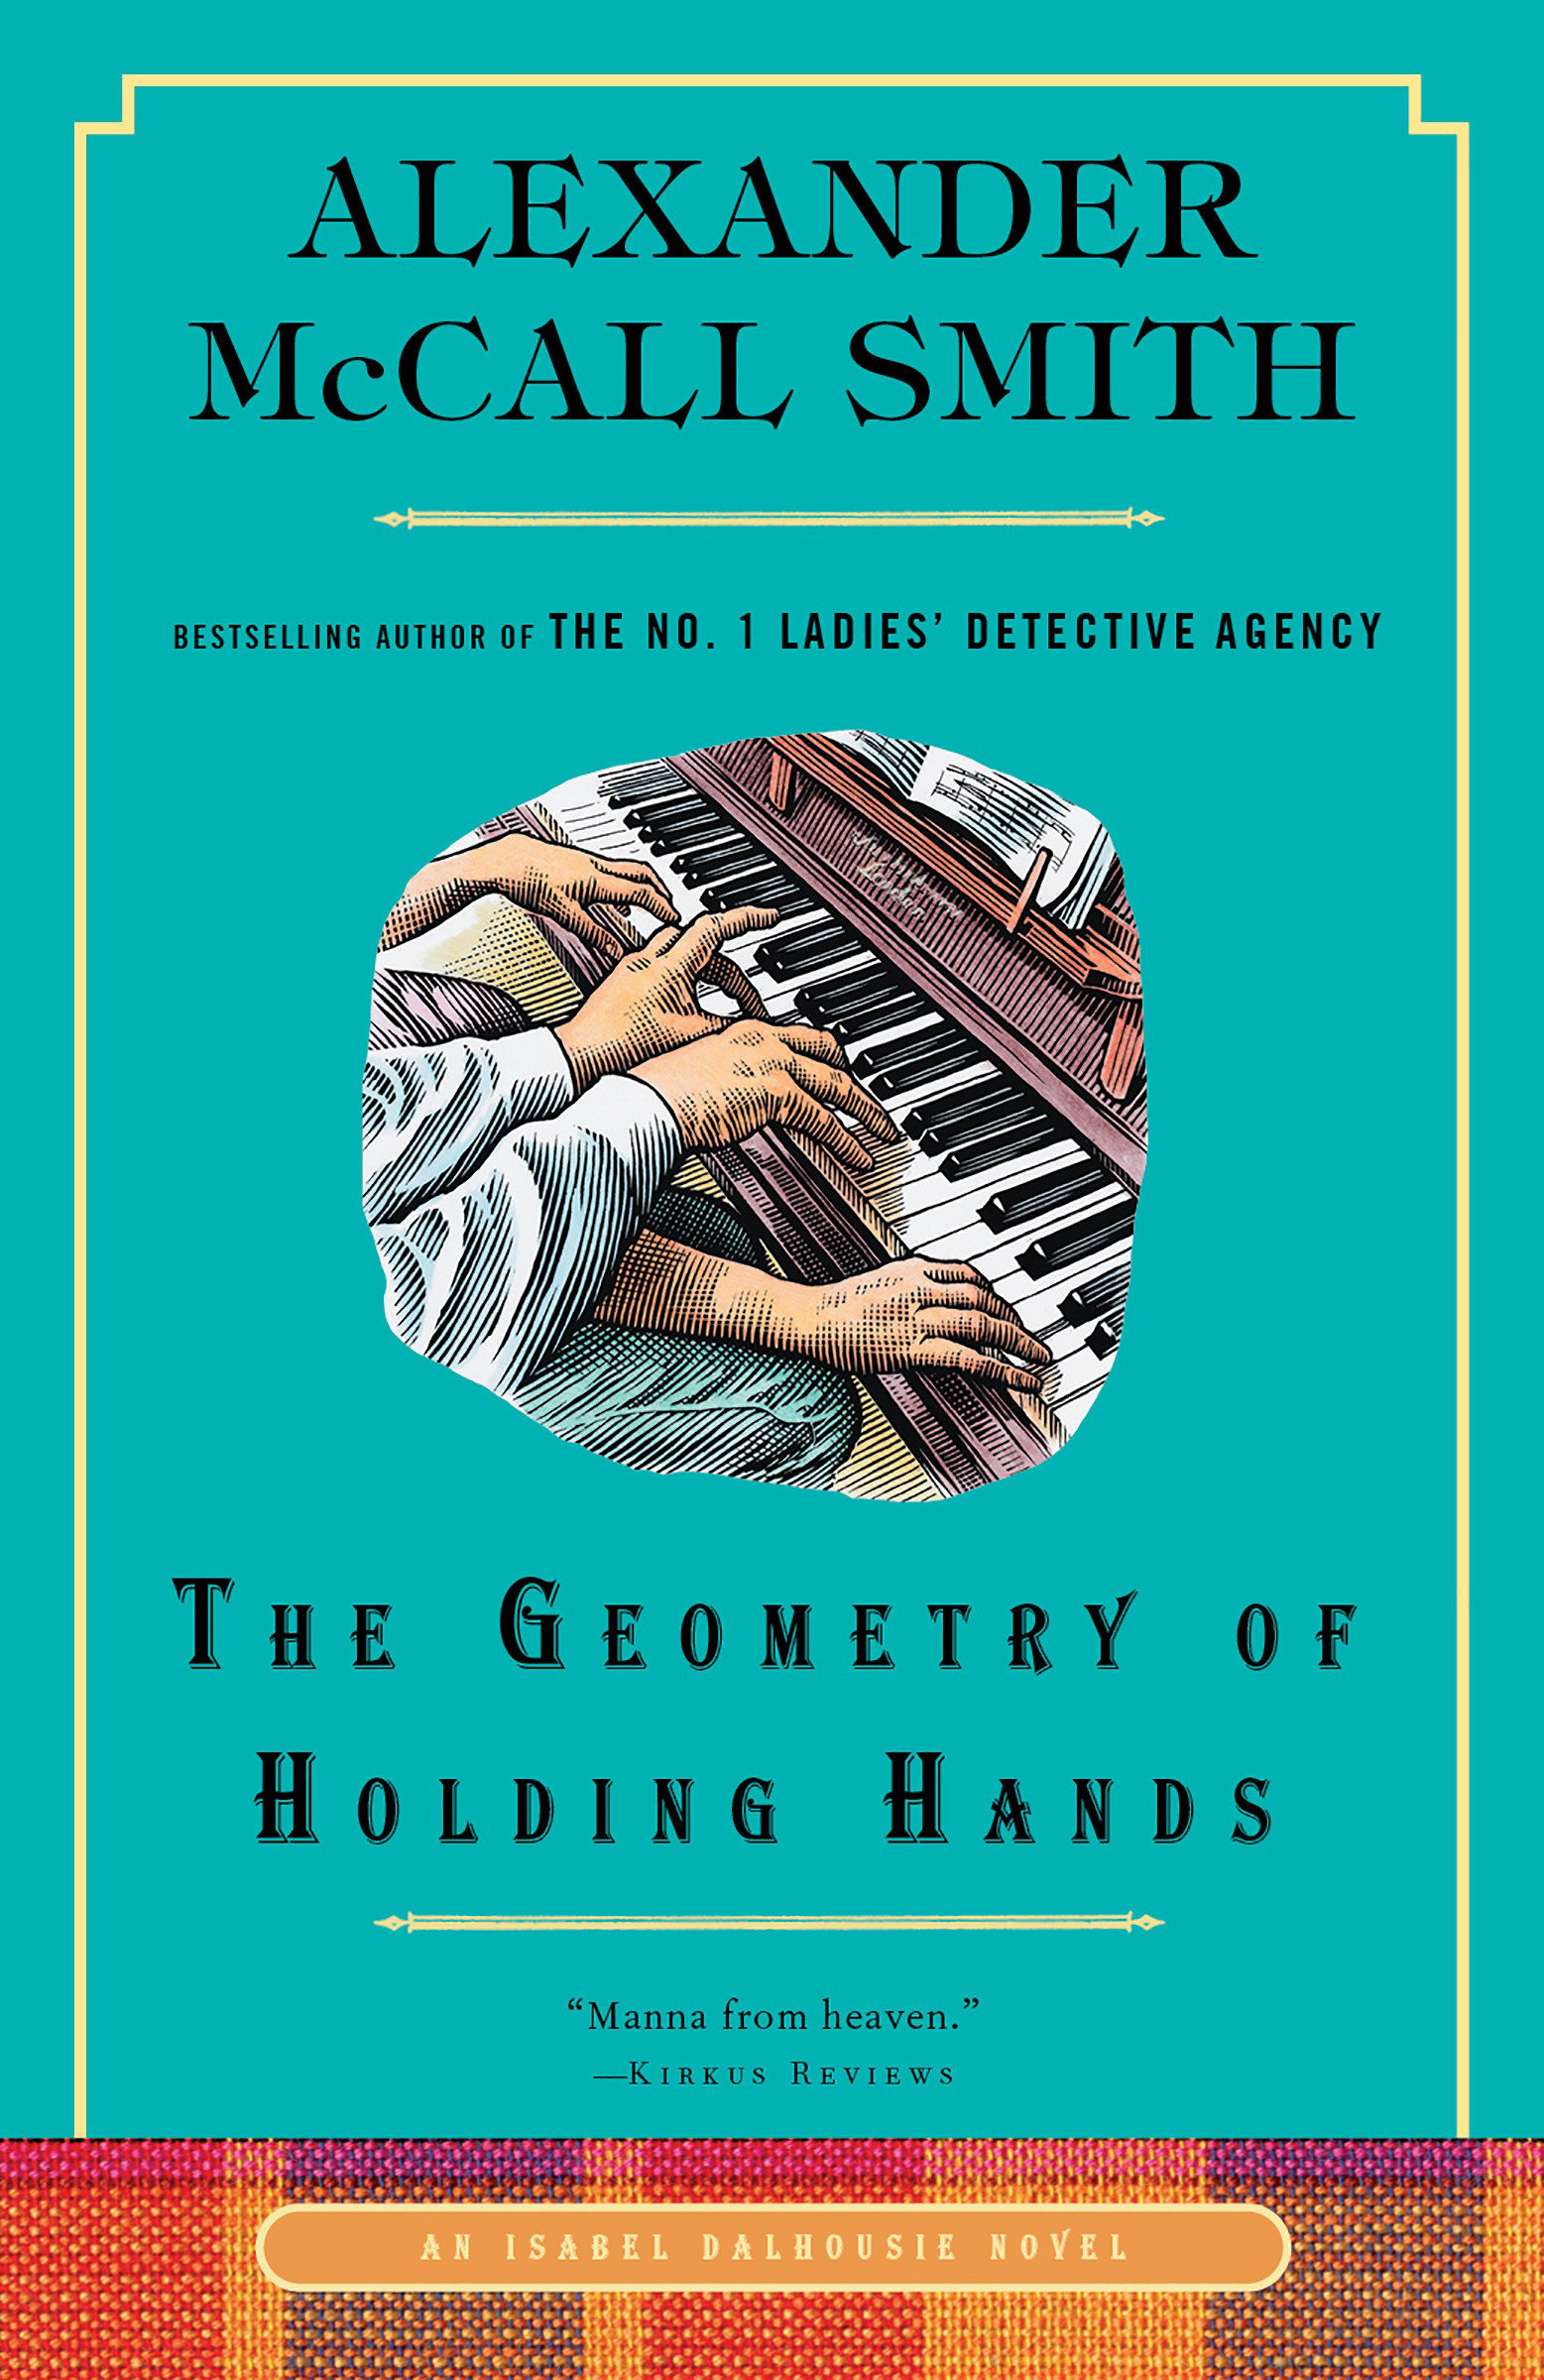 The Geometry of Holding Hands An Isabel Dalhousie Novel (13)